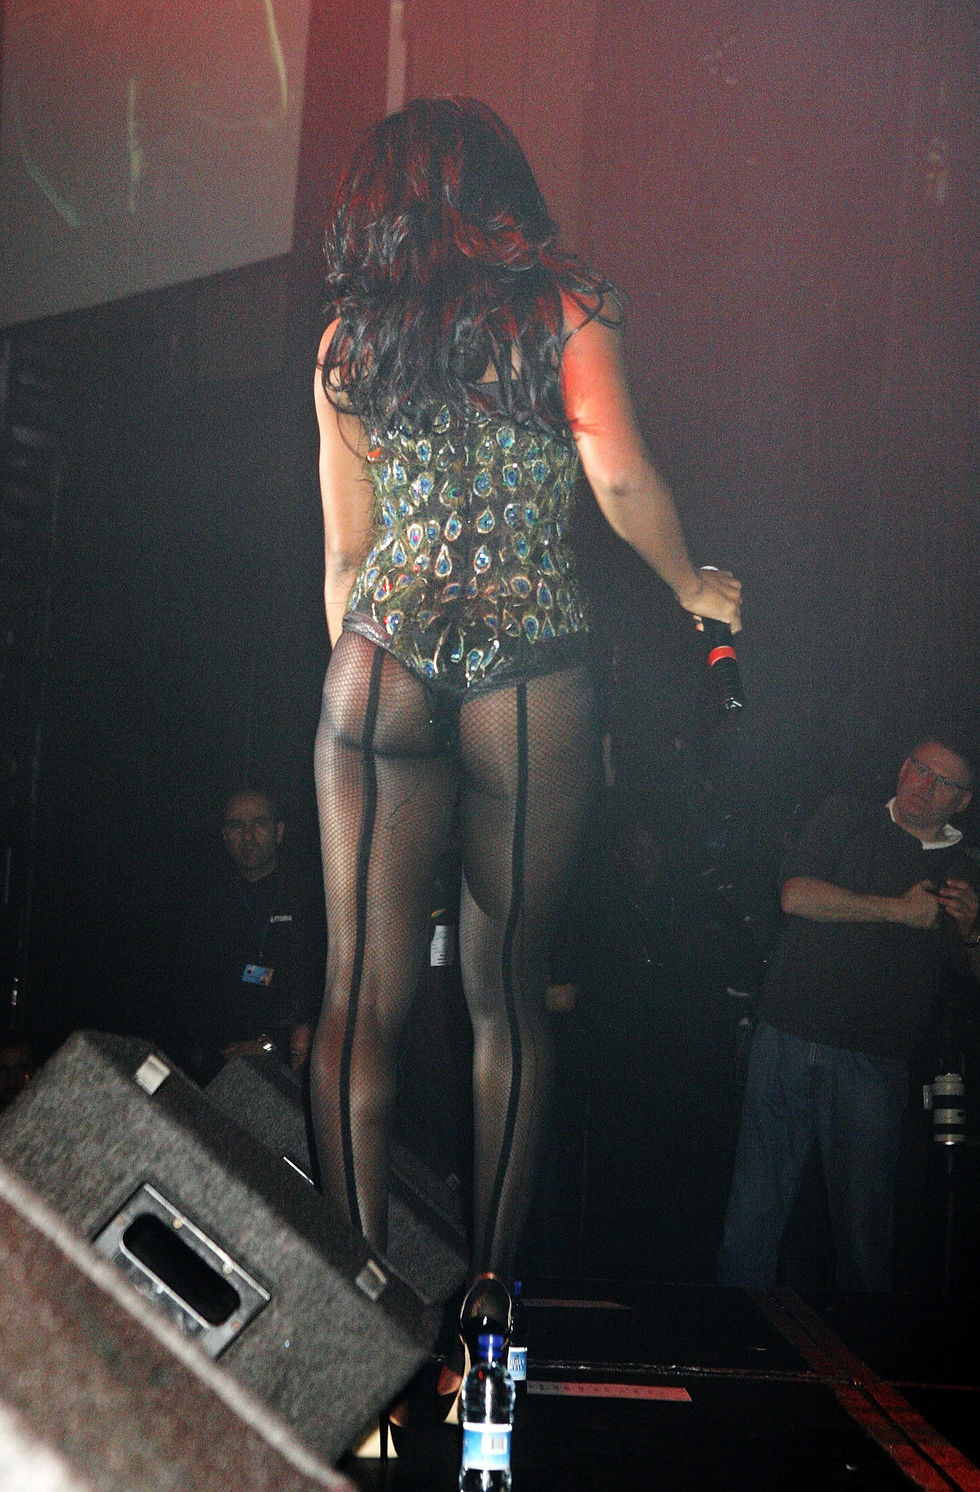 kelly-rowland-performs-on-stage-at-g-a-y-astoria-club-in-london-09